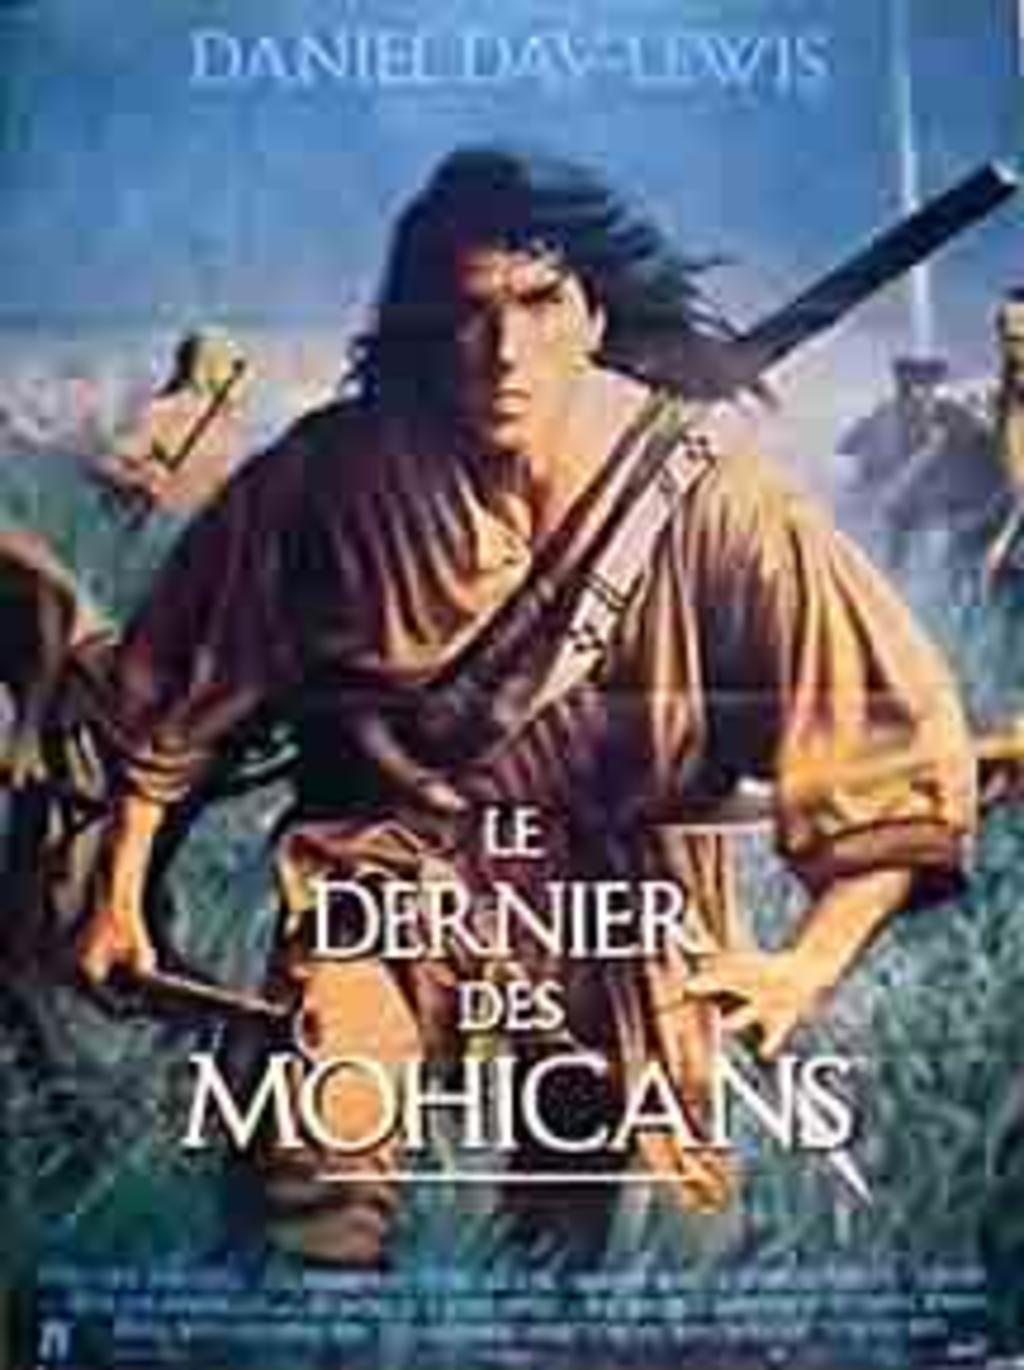 Watch The Last of the Mohicans on Netflix Today ...